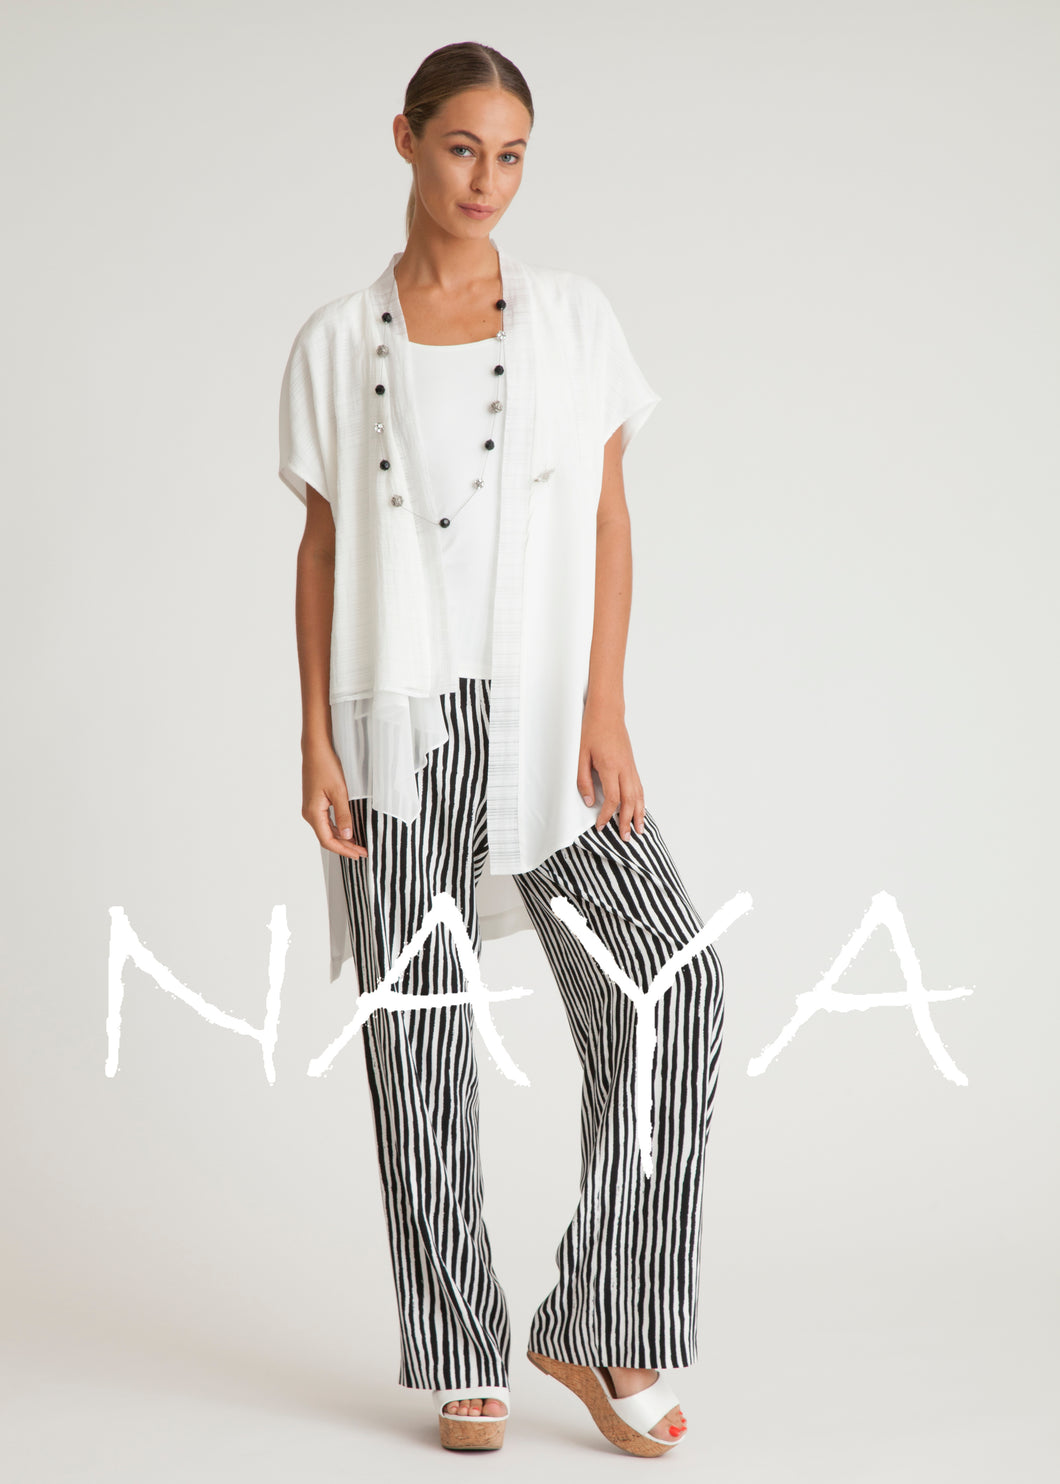 Naya Stripe Wide Leg Trousers NAS19221 | The LBD Boutique & Trouser Shop